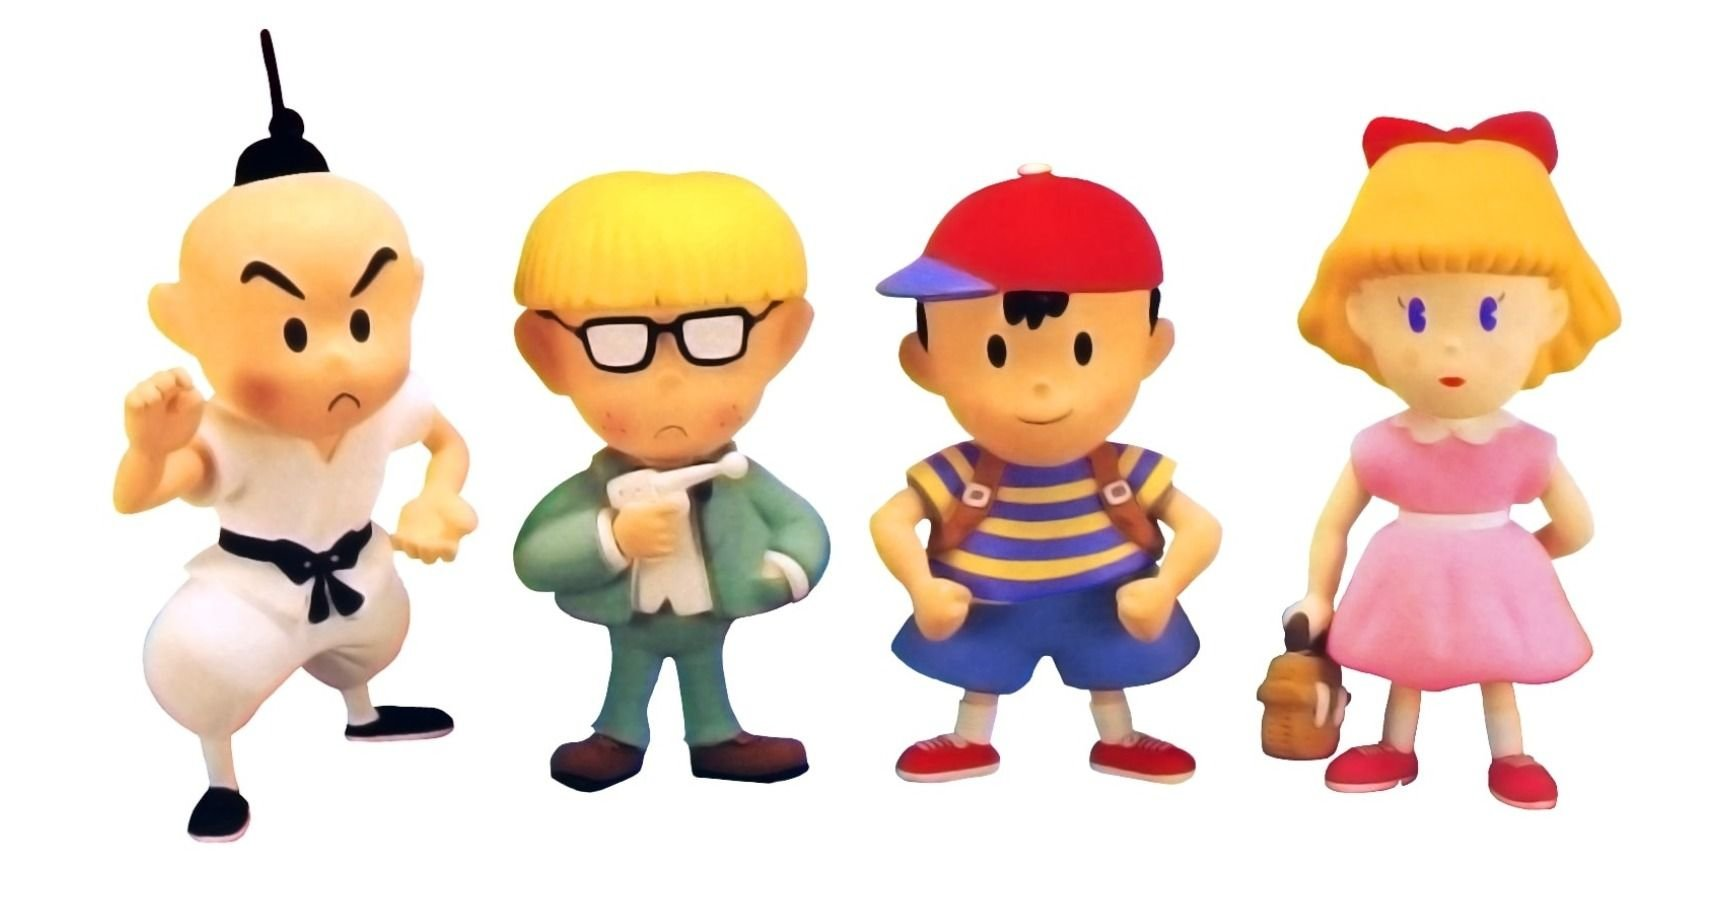 An EarthBound/Mother Manga Series Could Be On The Way